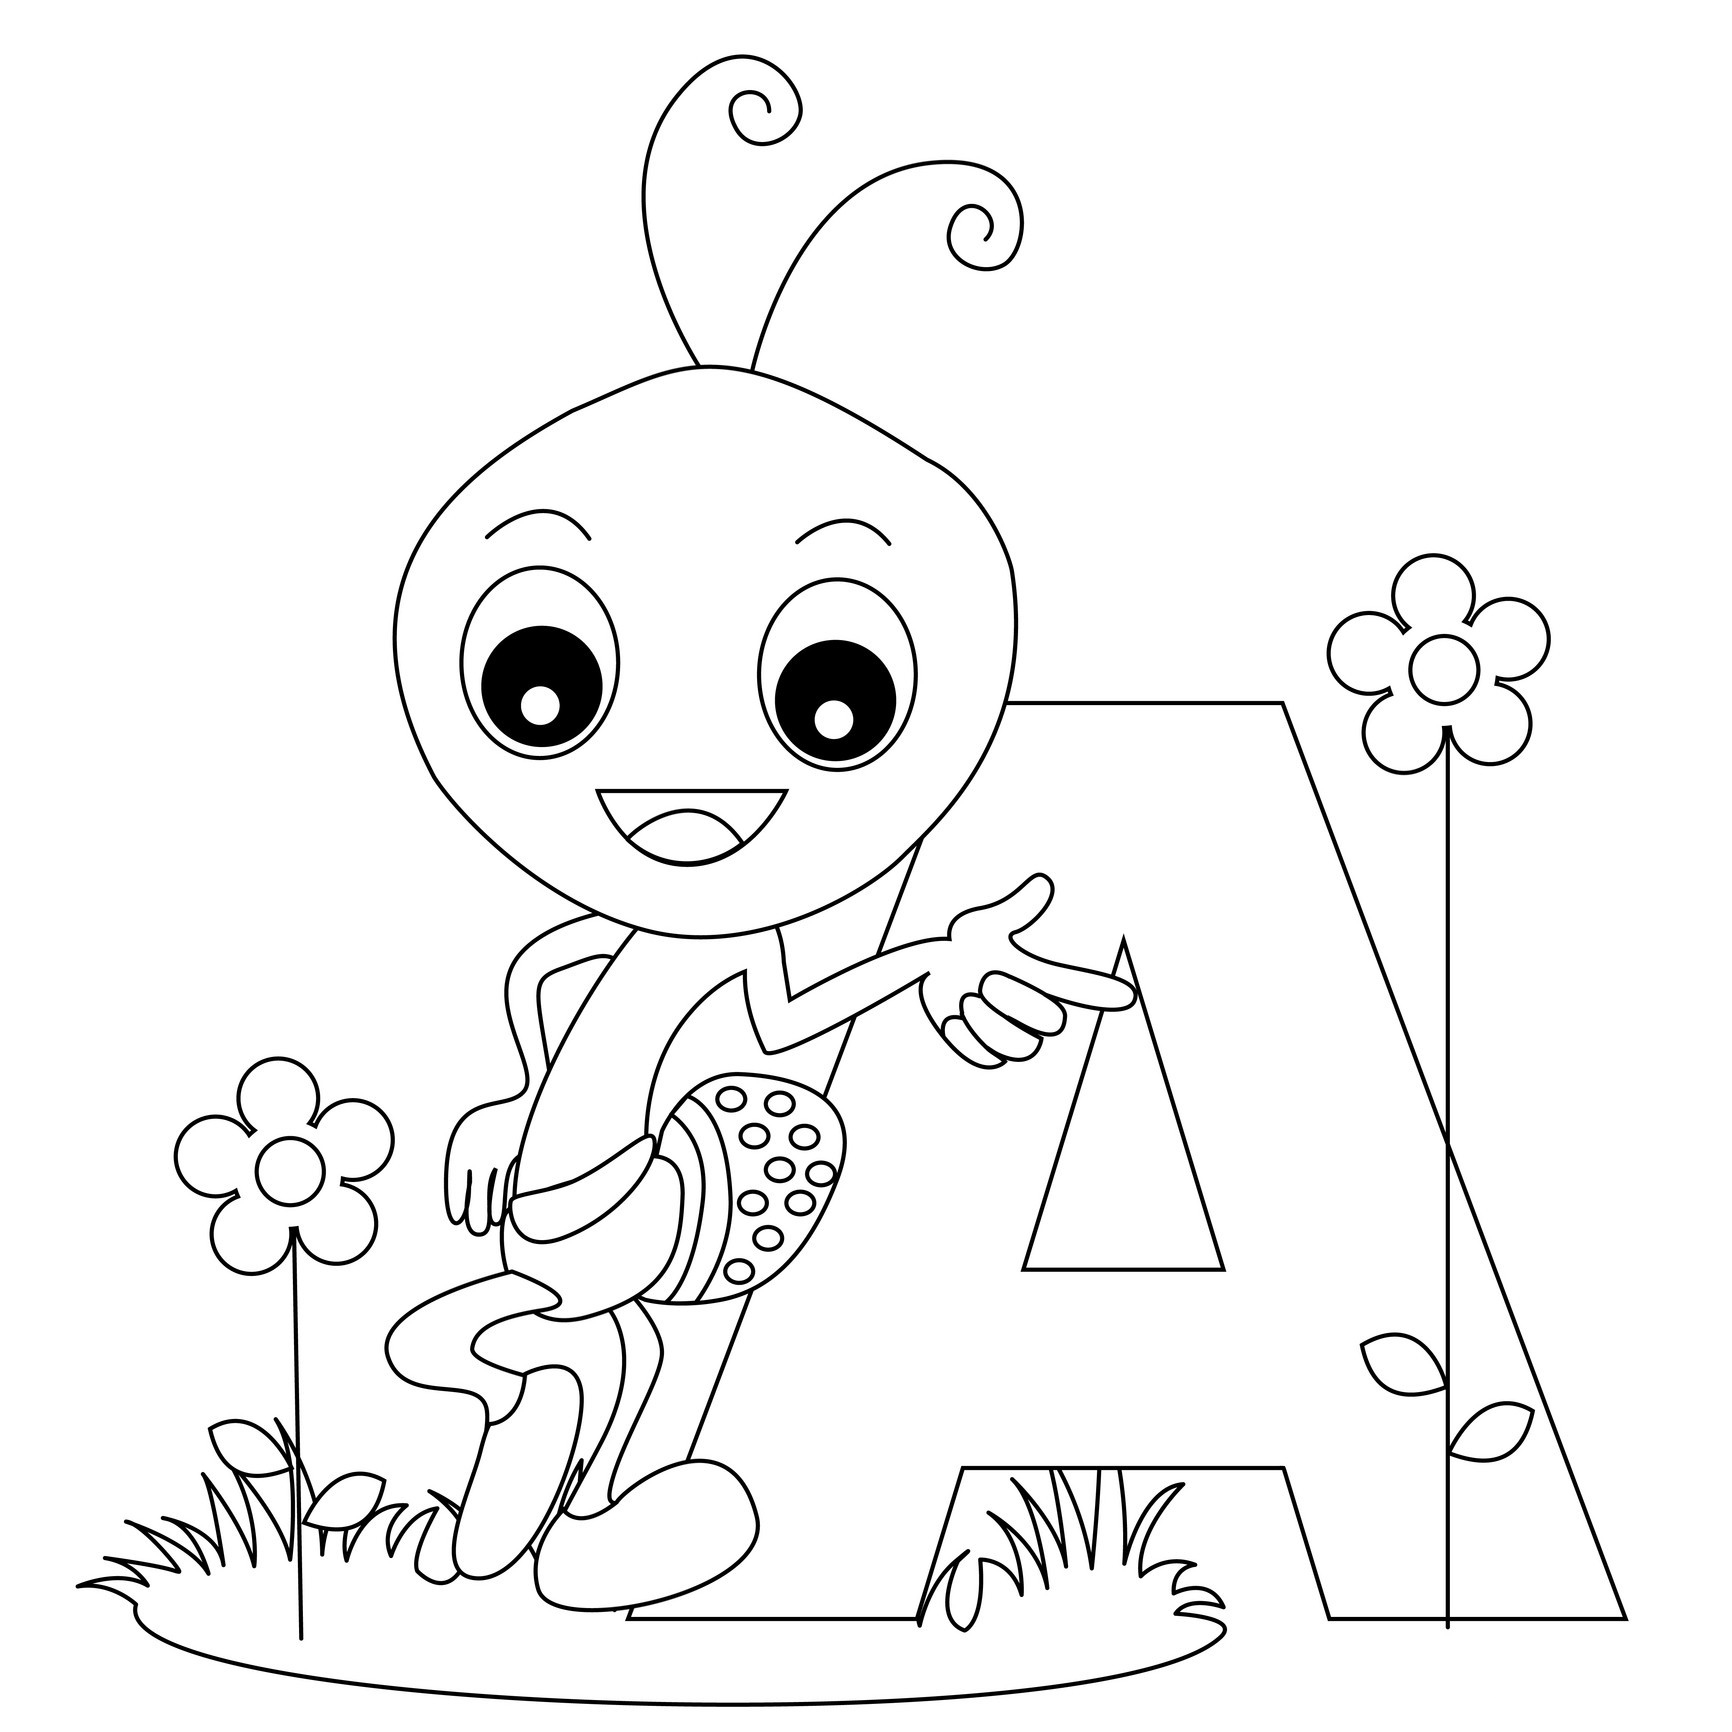 abc coloring page a z alphabet coloring pages download and print for free coloring page abc